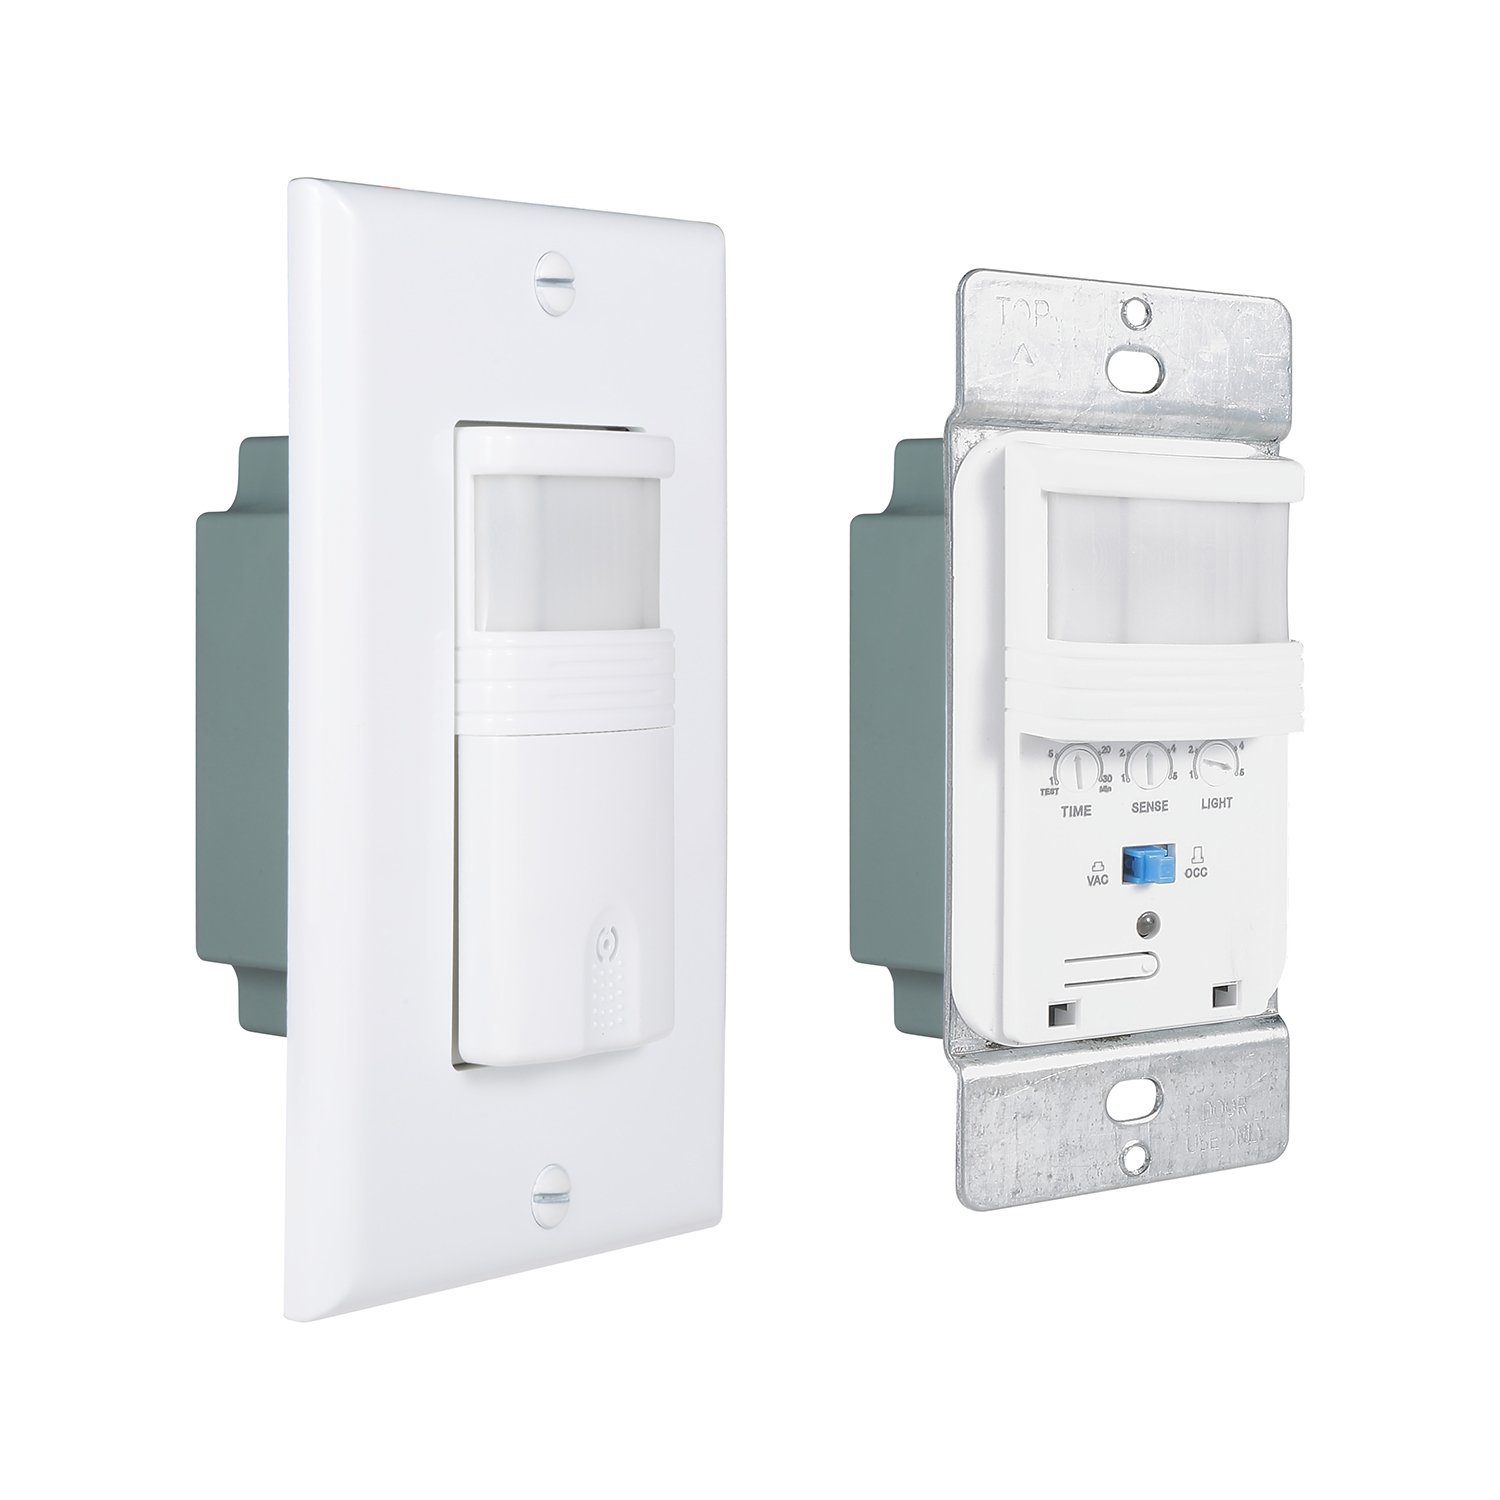 Pack Of 4 White Motion Sensor Light Switch Neutral Wire Required Wiring Diagram Get Free Image About Single Pole Only For Indoor Use Vacancy Occupancy Modes Title 24